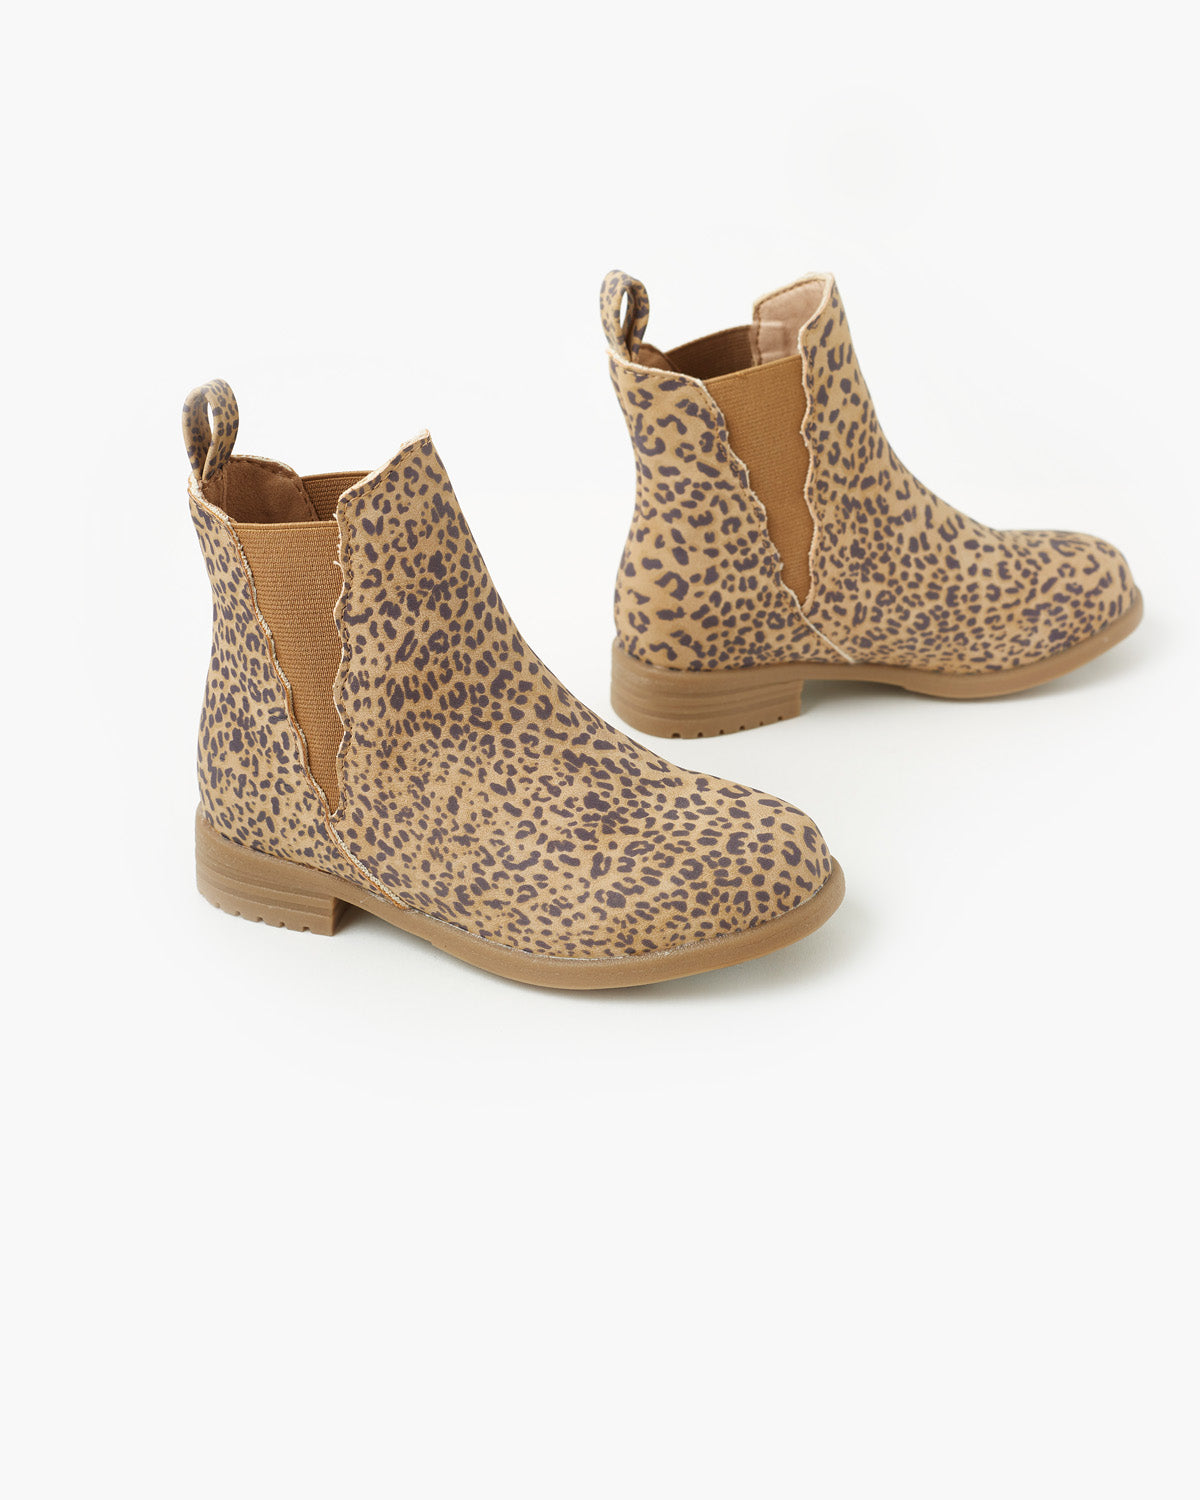 Kendall Scalloped Boot - Tan Leopard